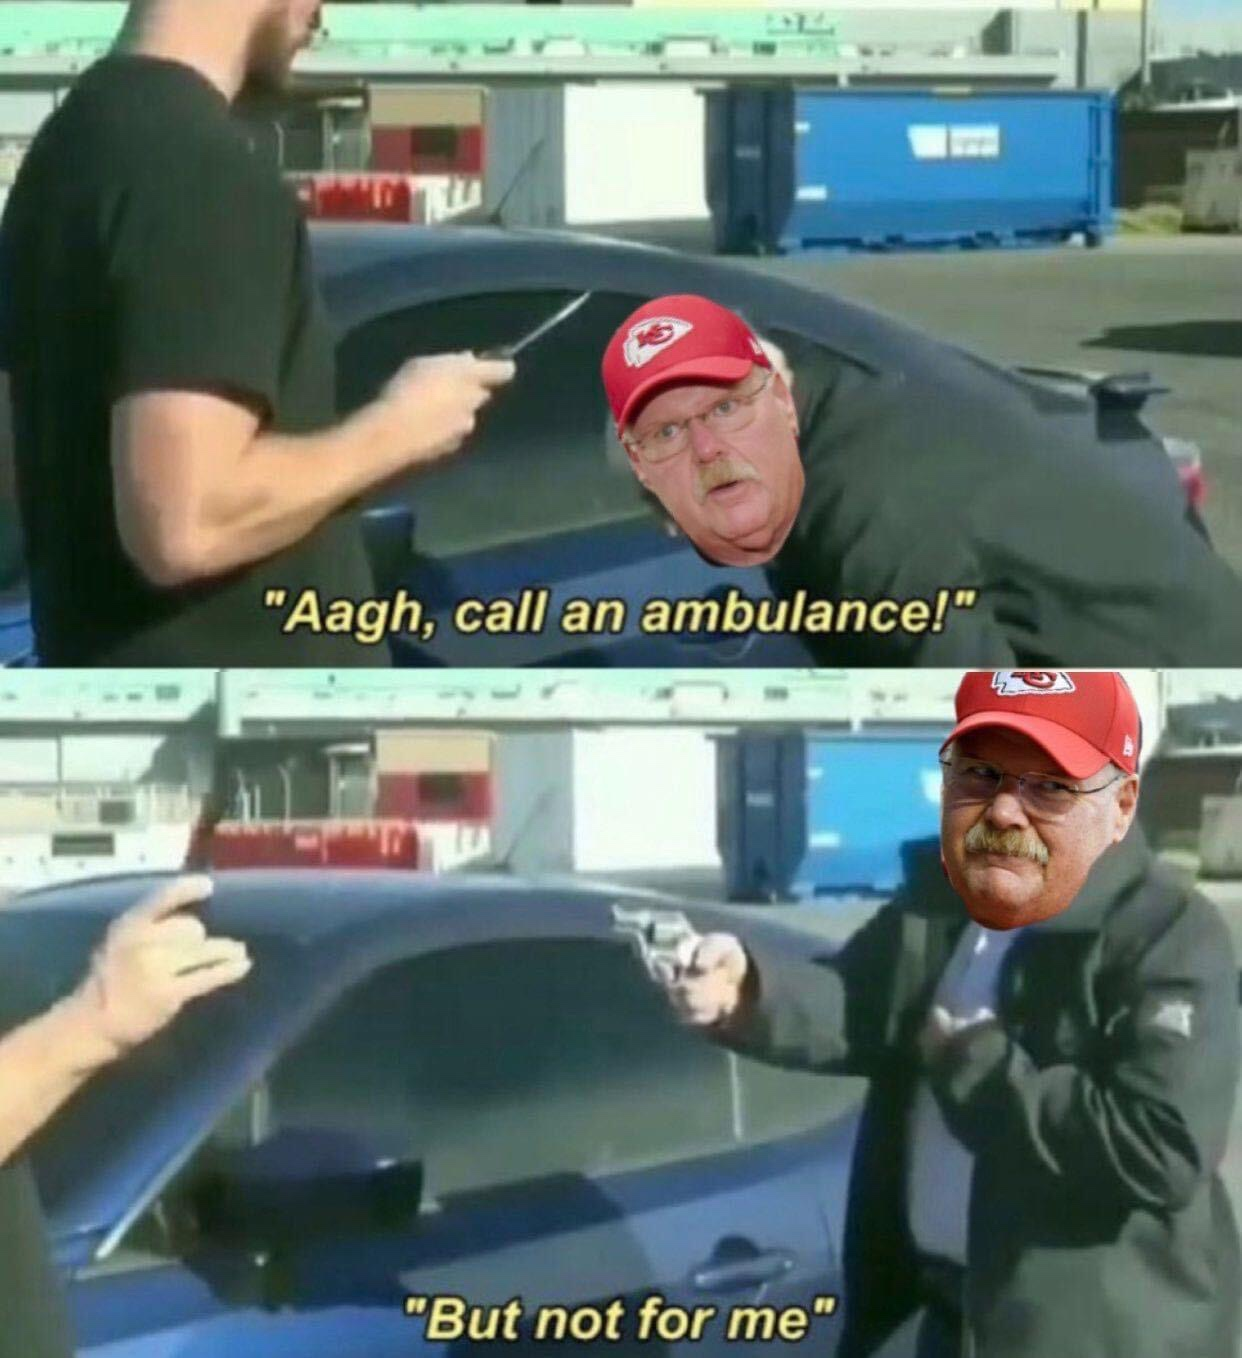 Aagh, call an ambulance but not for me Andy Reid meme